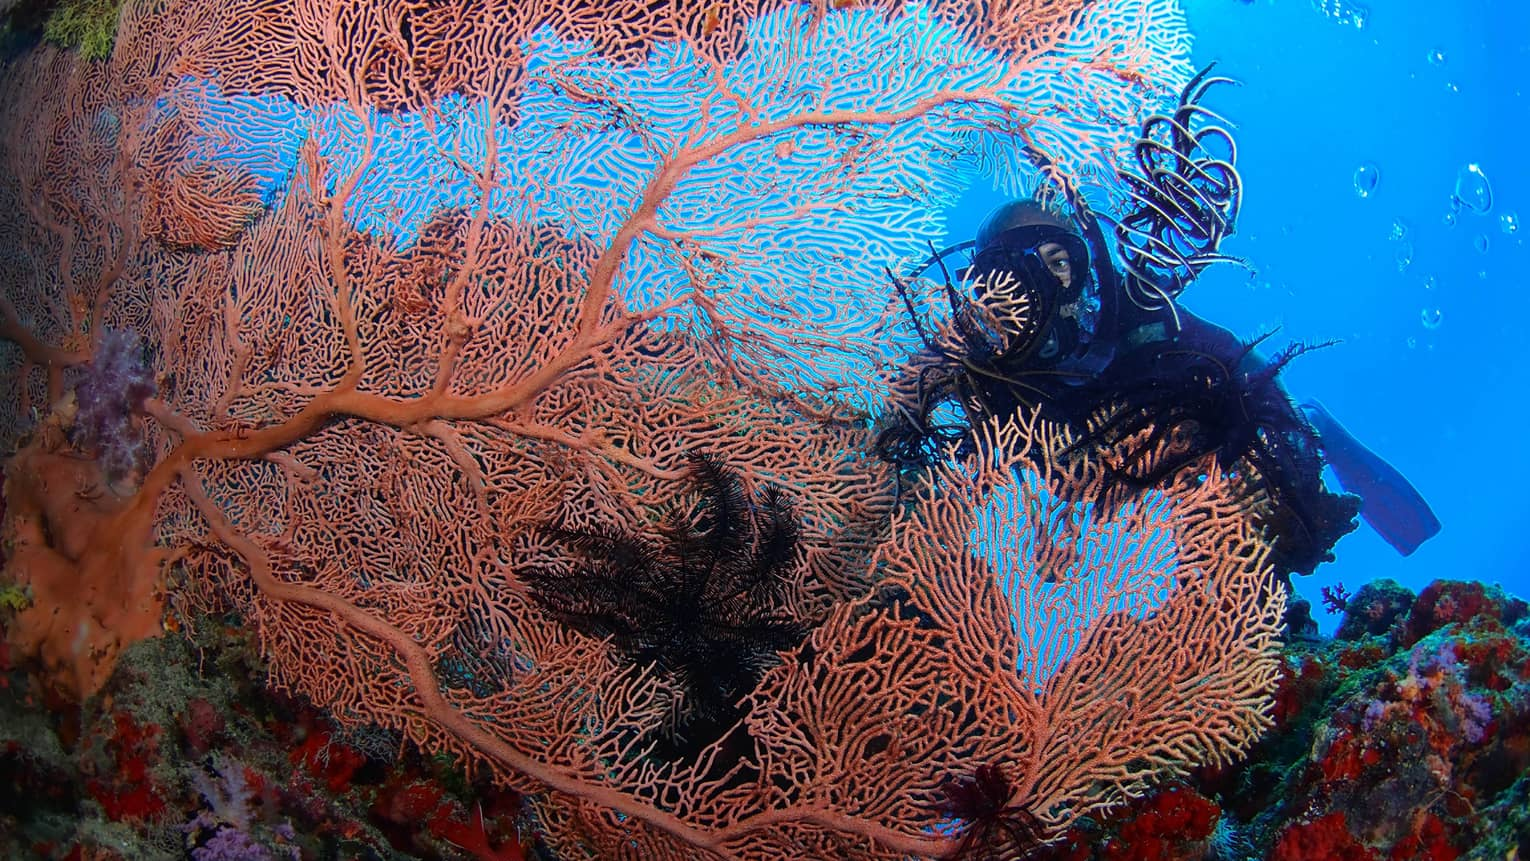 A Scuba diver swims behind large, colourful coral in lagoon